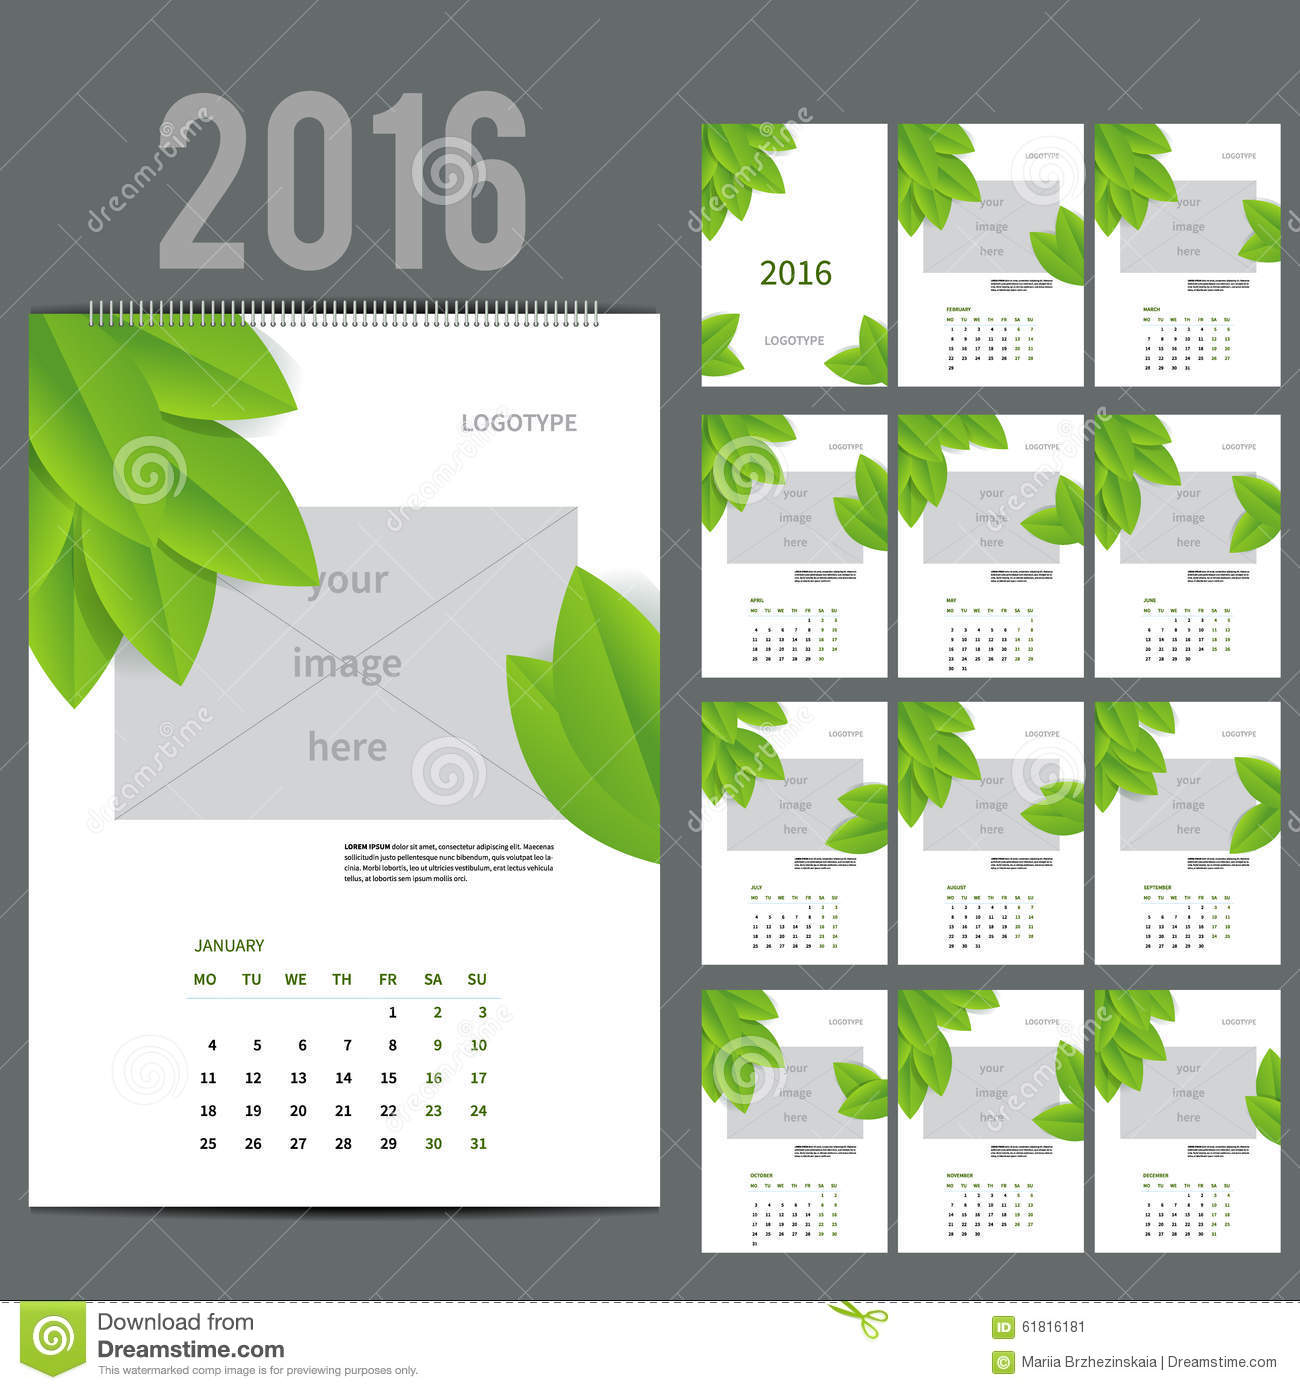 Corporate Calendar Design 2016 : Eco style calendar of vector illustration stock